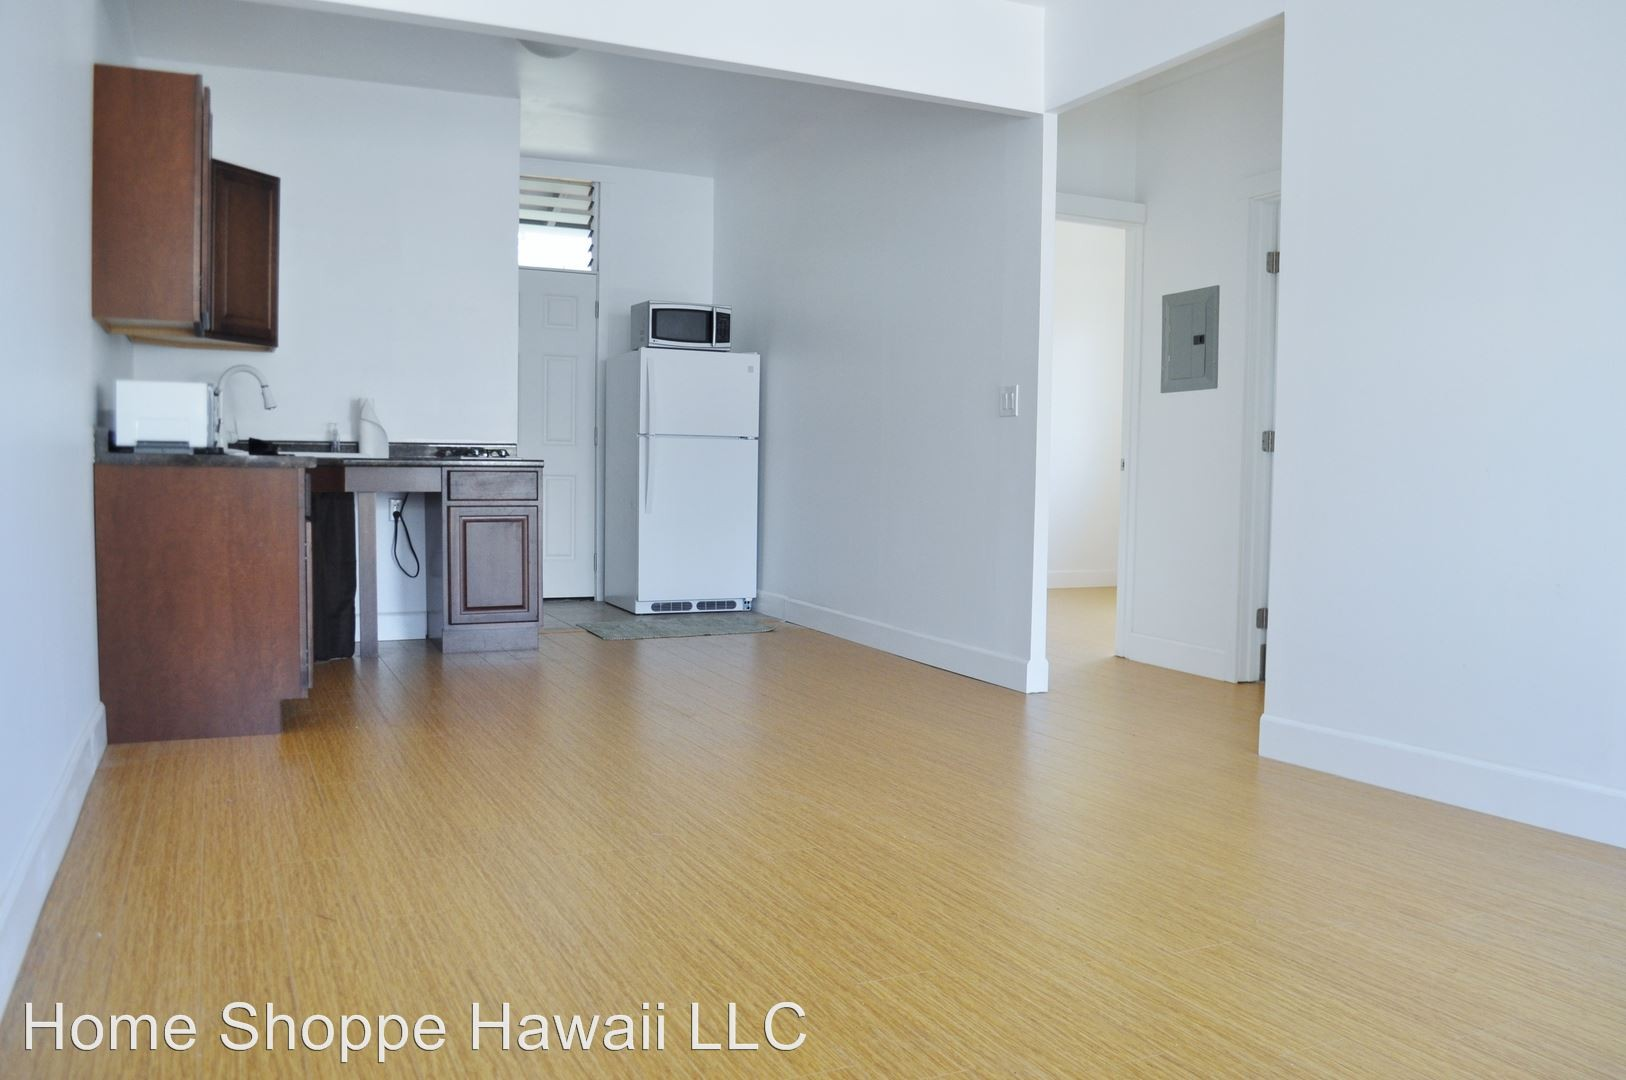 3619c Maunalei Ave Urban Honolulu Hi 96816 2 Bedroom Apartment For Rent For 1 875 Month Zumper